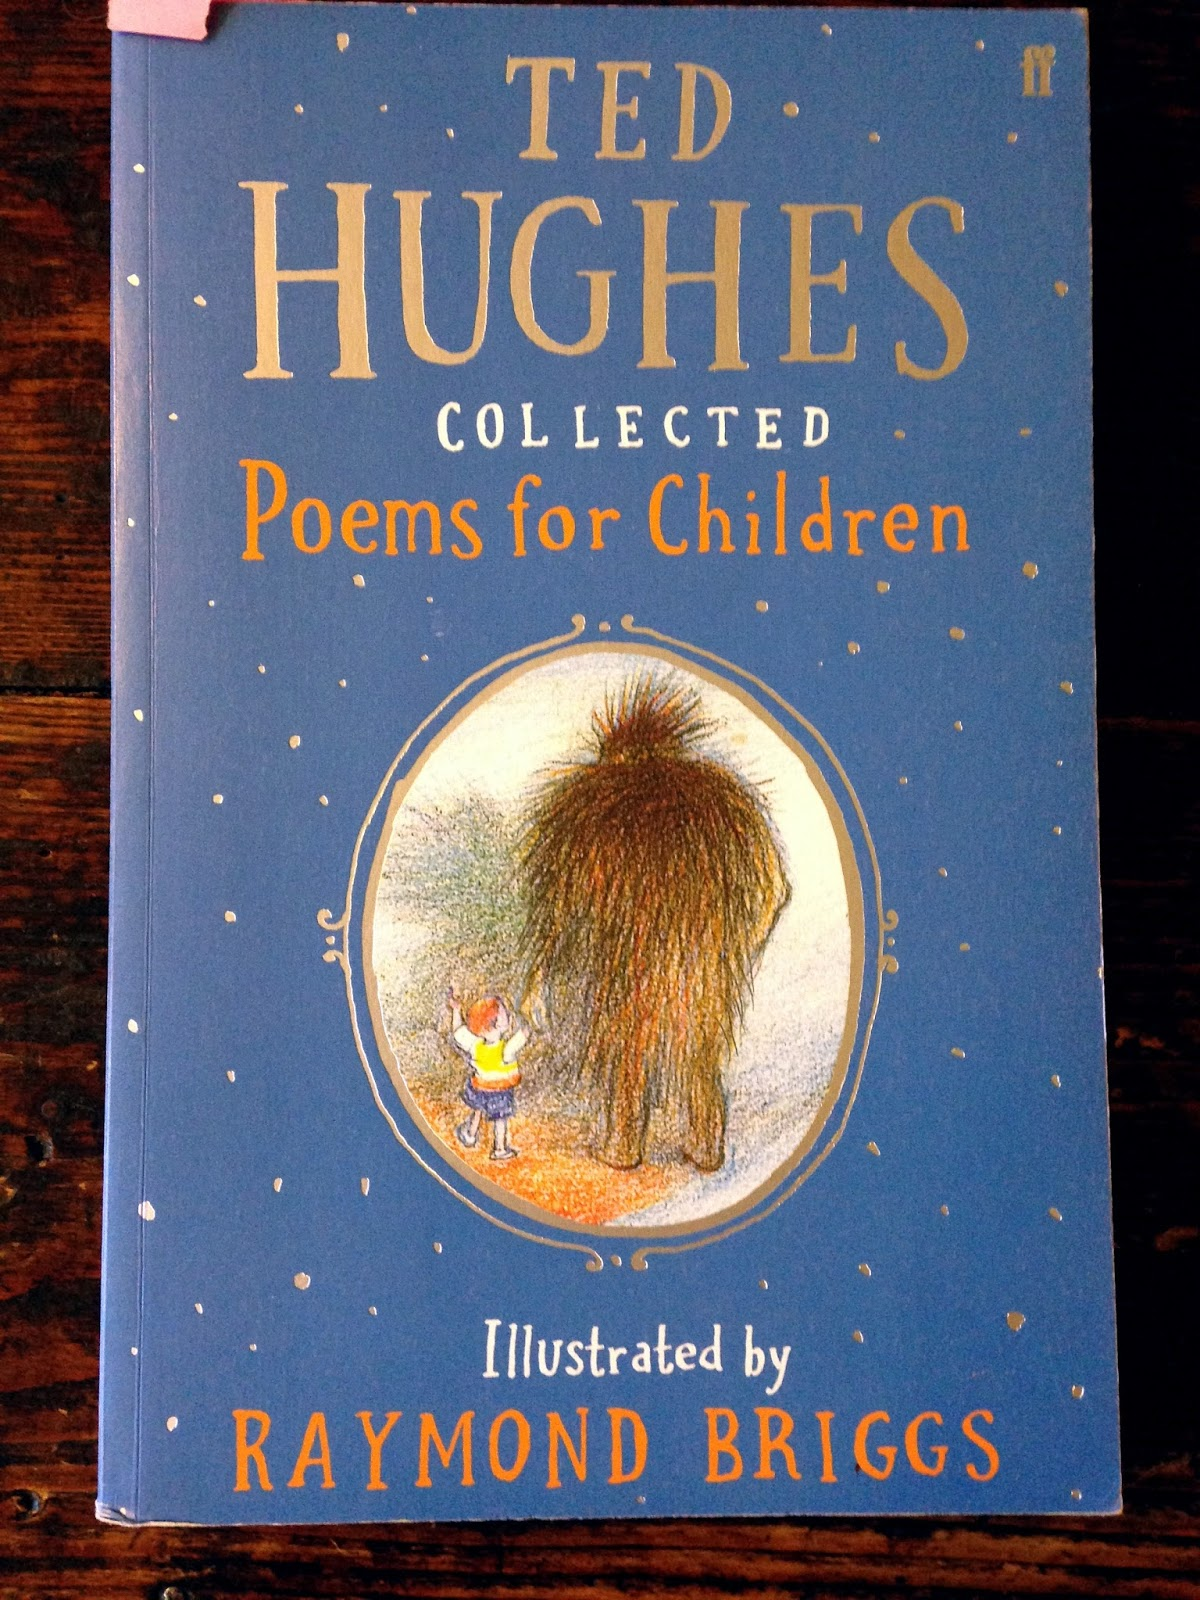 angel ted hughes poem analysis 29 poems of ted hughes ted hughes is consistently described as one of the twentieth century's greatest english poets born august 17th, 1930 in mytholmroyd, yorkshire, his family moved to mexborough when he was seven to run a newspaper and tobacco shop.